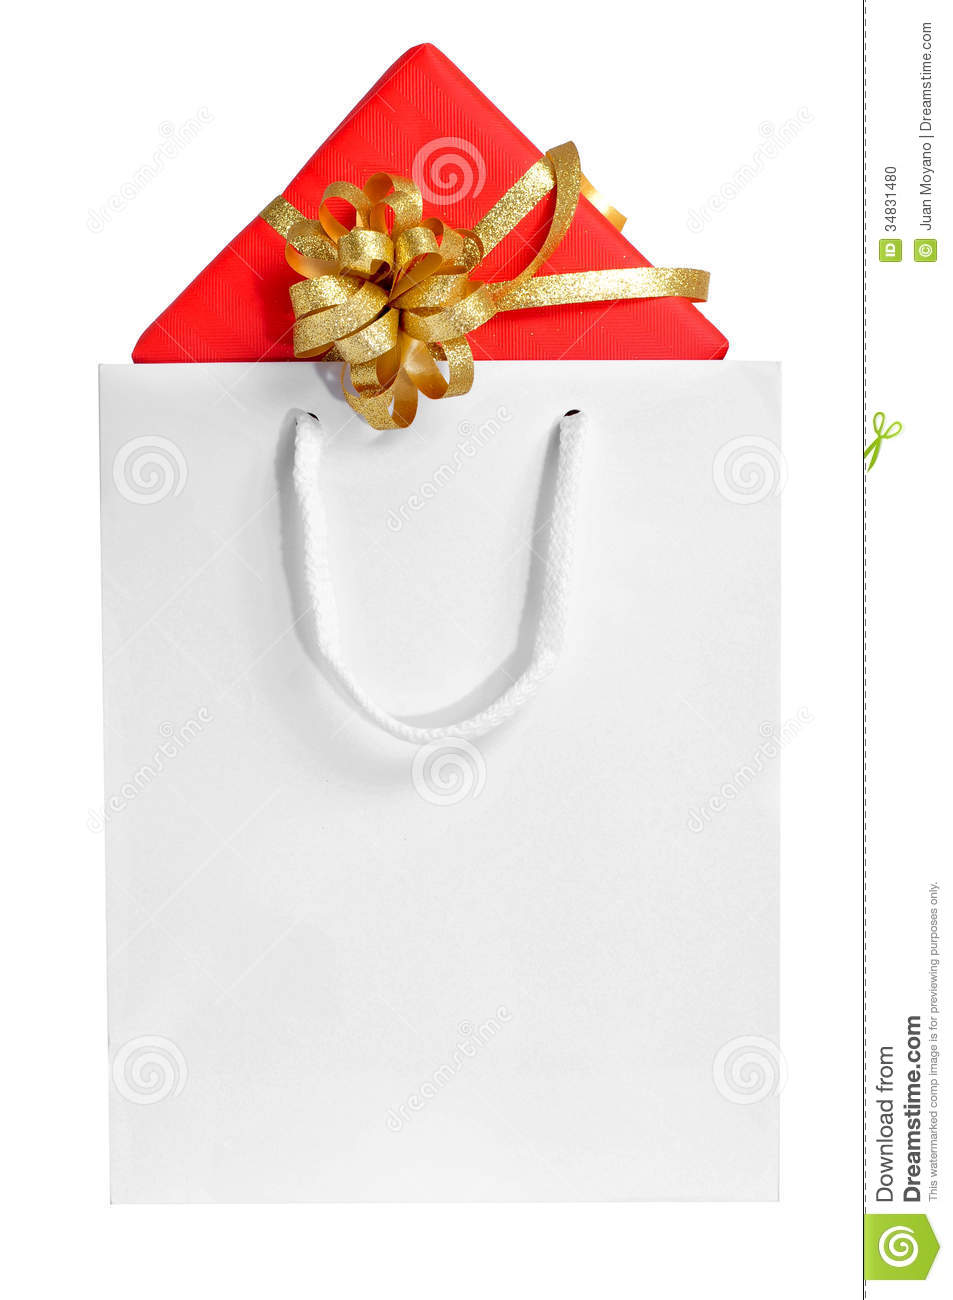 Gift In A Shopping Bag Stock Photo - Image: 34831480